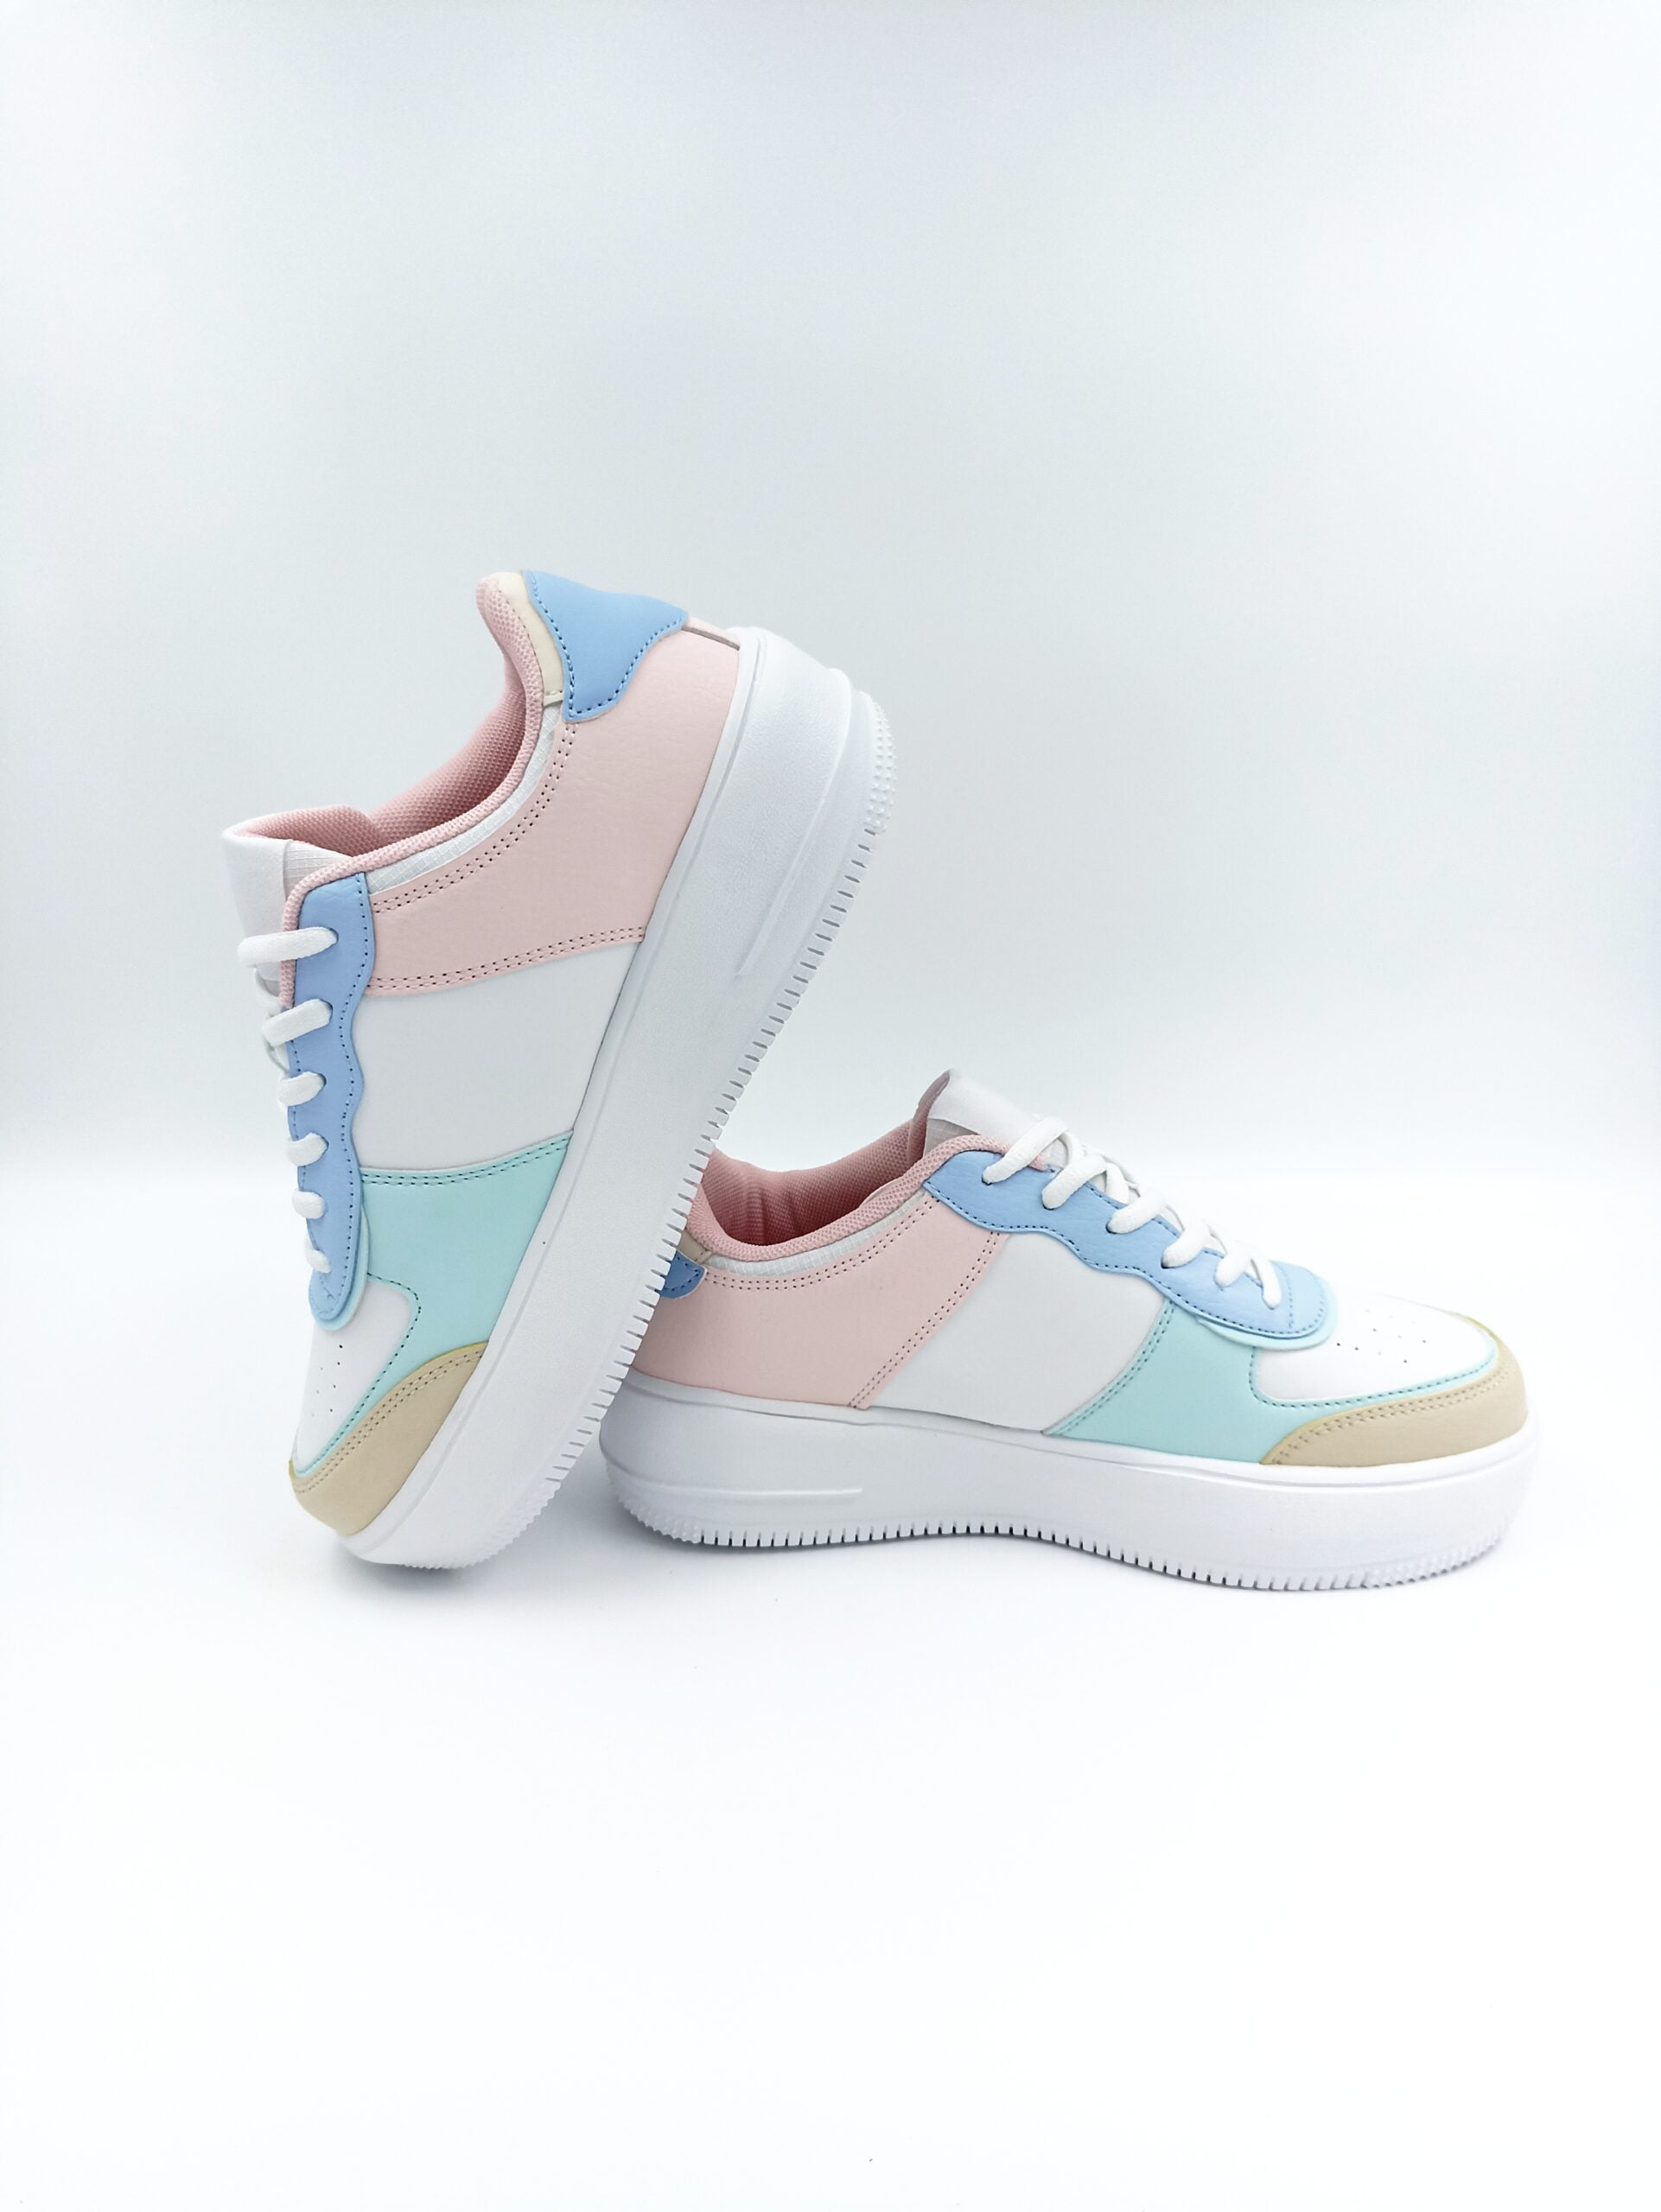 Women's sneakers colored